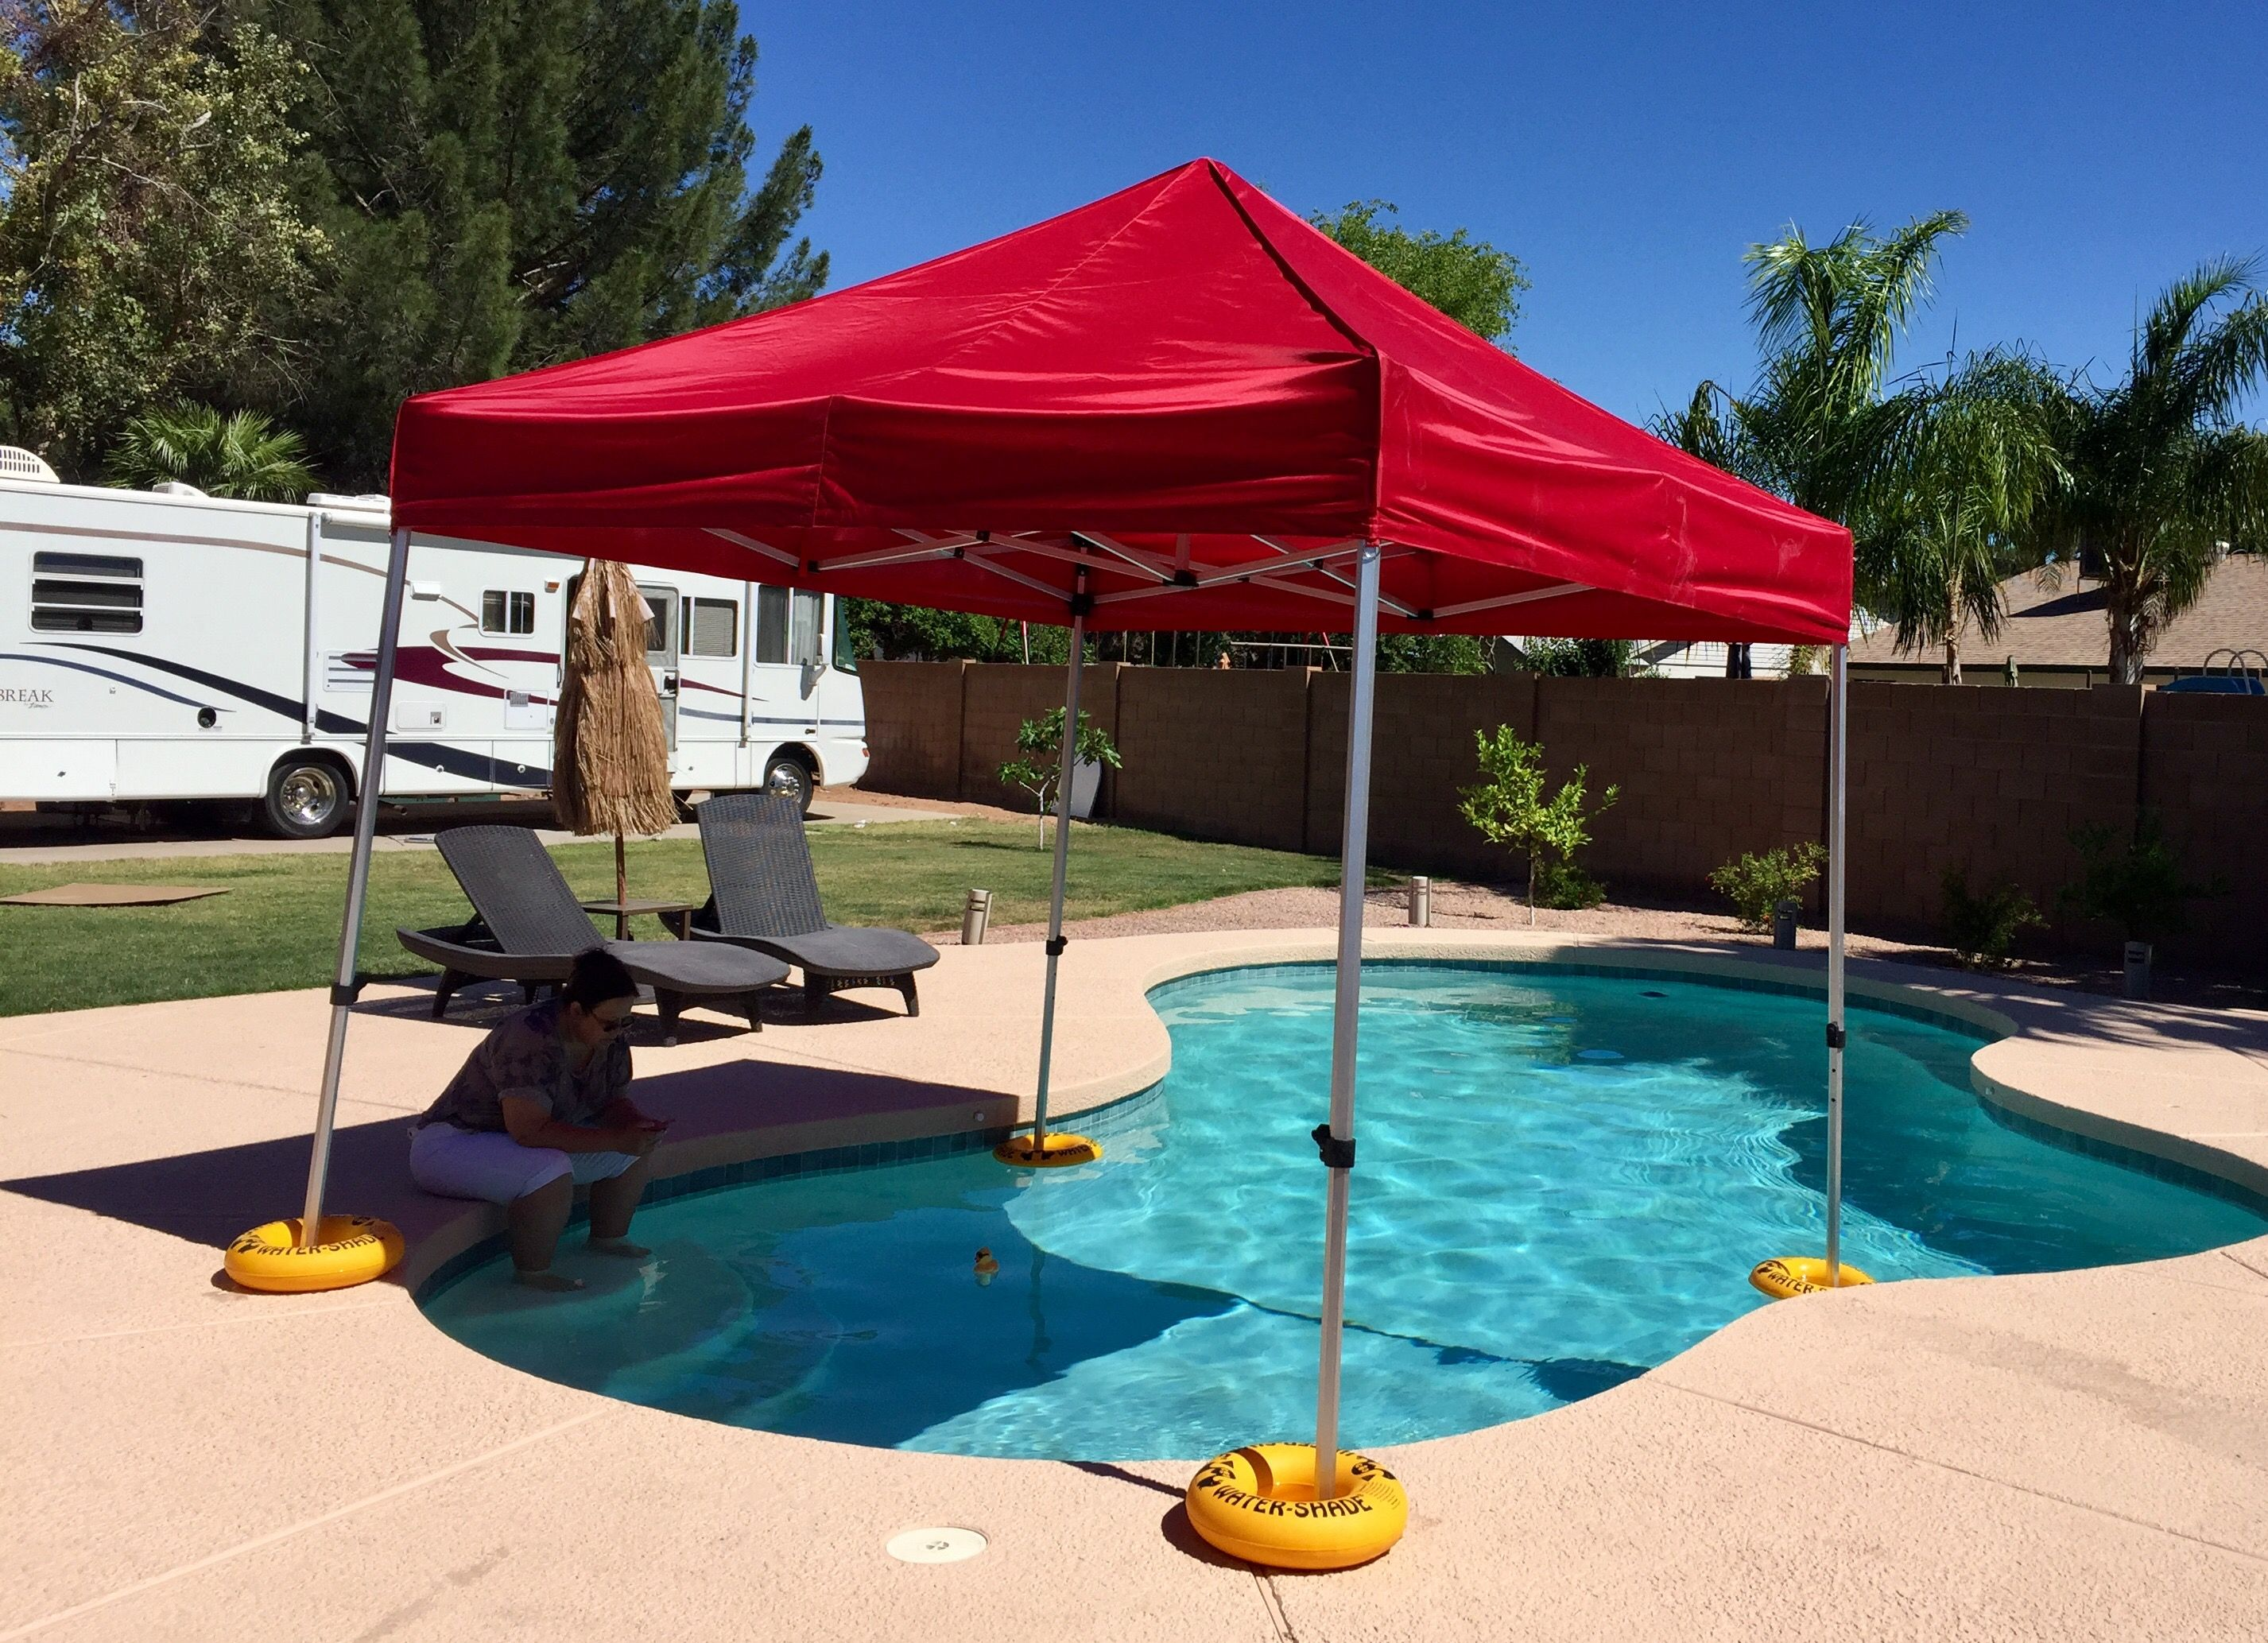 The New Water Shade Canopy Floating